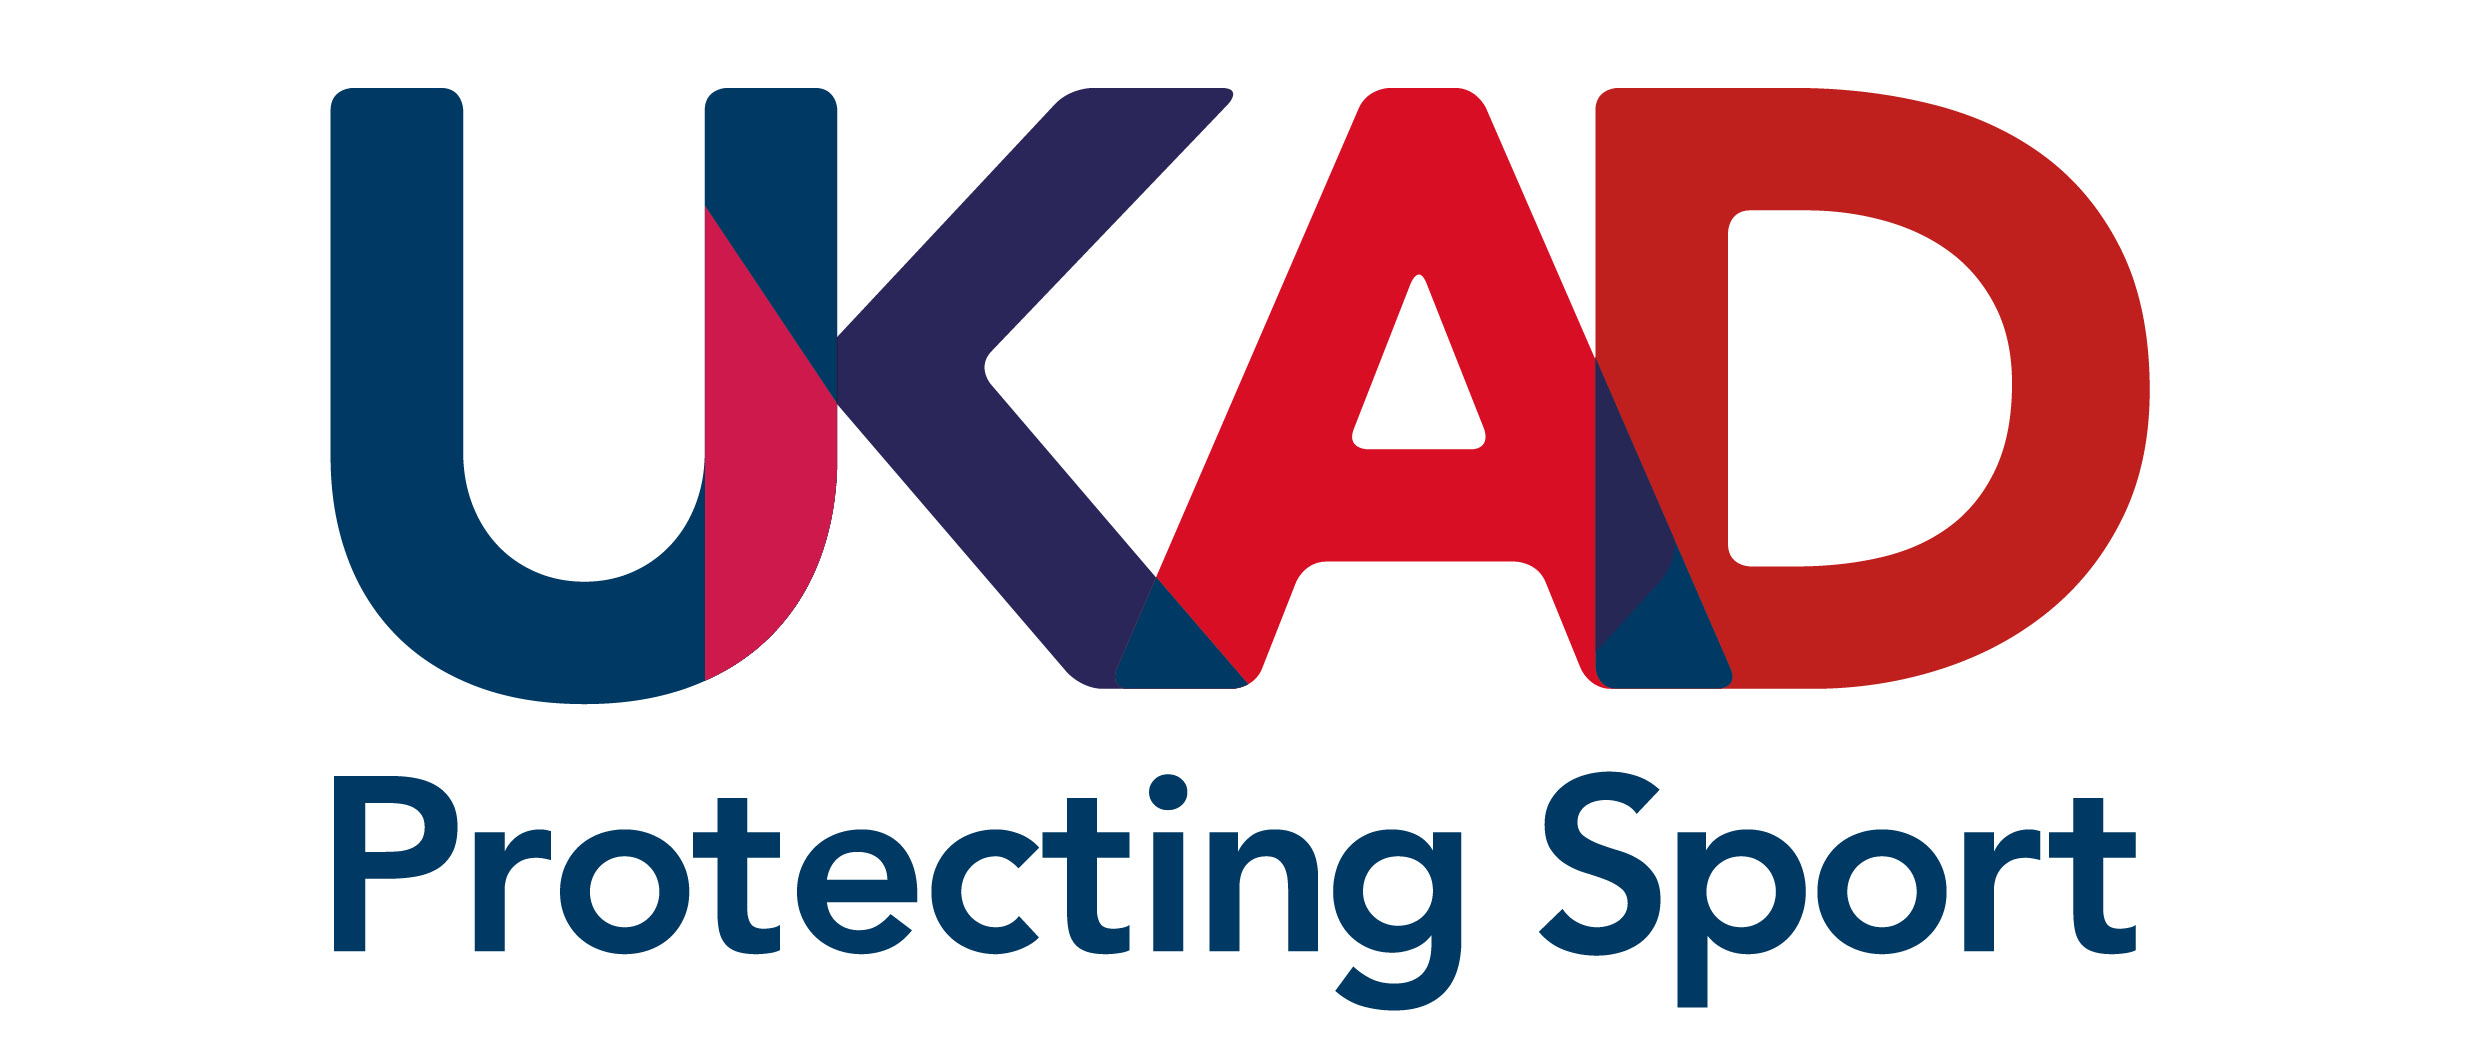 UKAD secures fitness industry commitment to new education programme after survey shows a third of gym users are aware of dangerous steroid and IPED use at their gyms